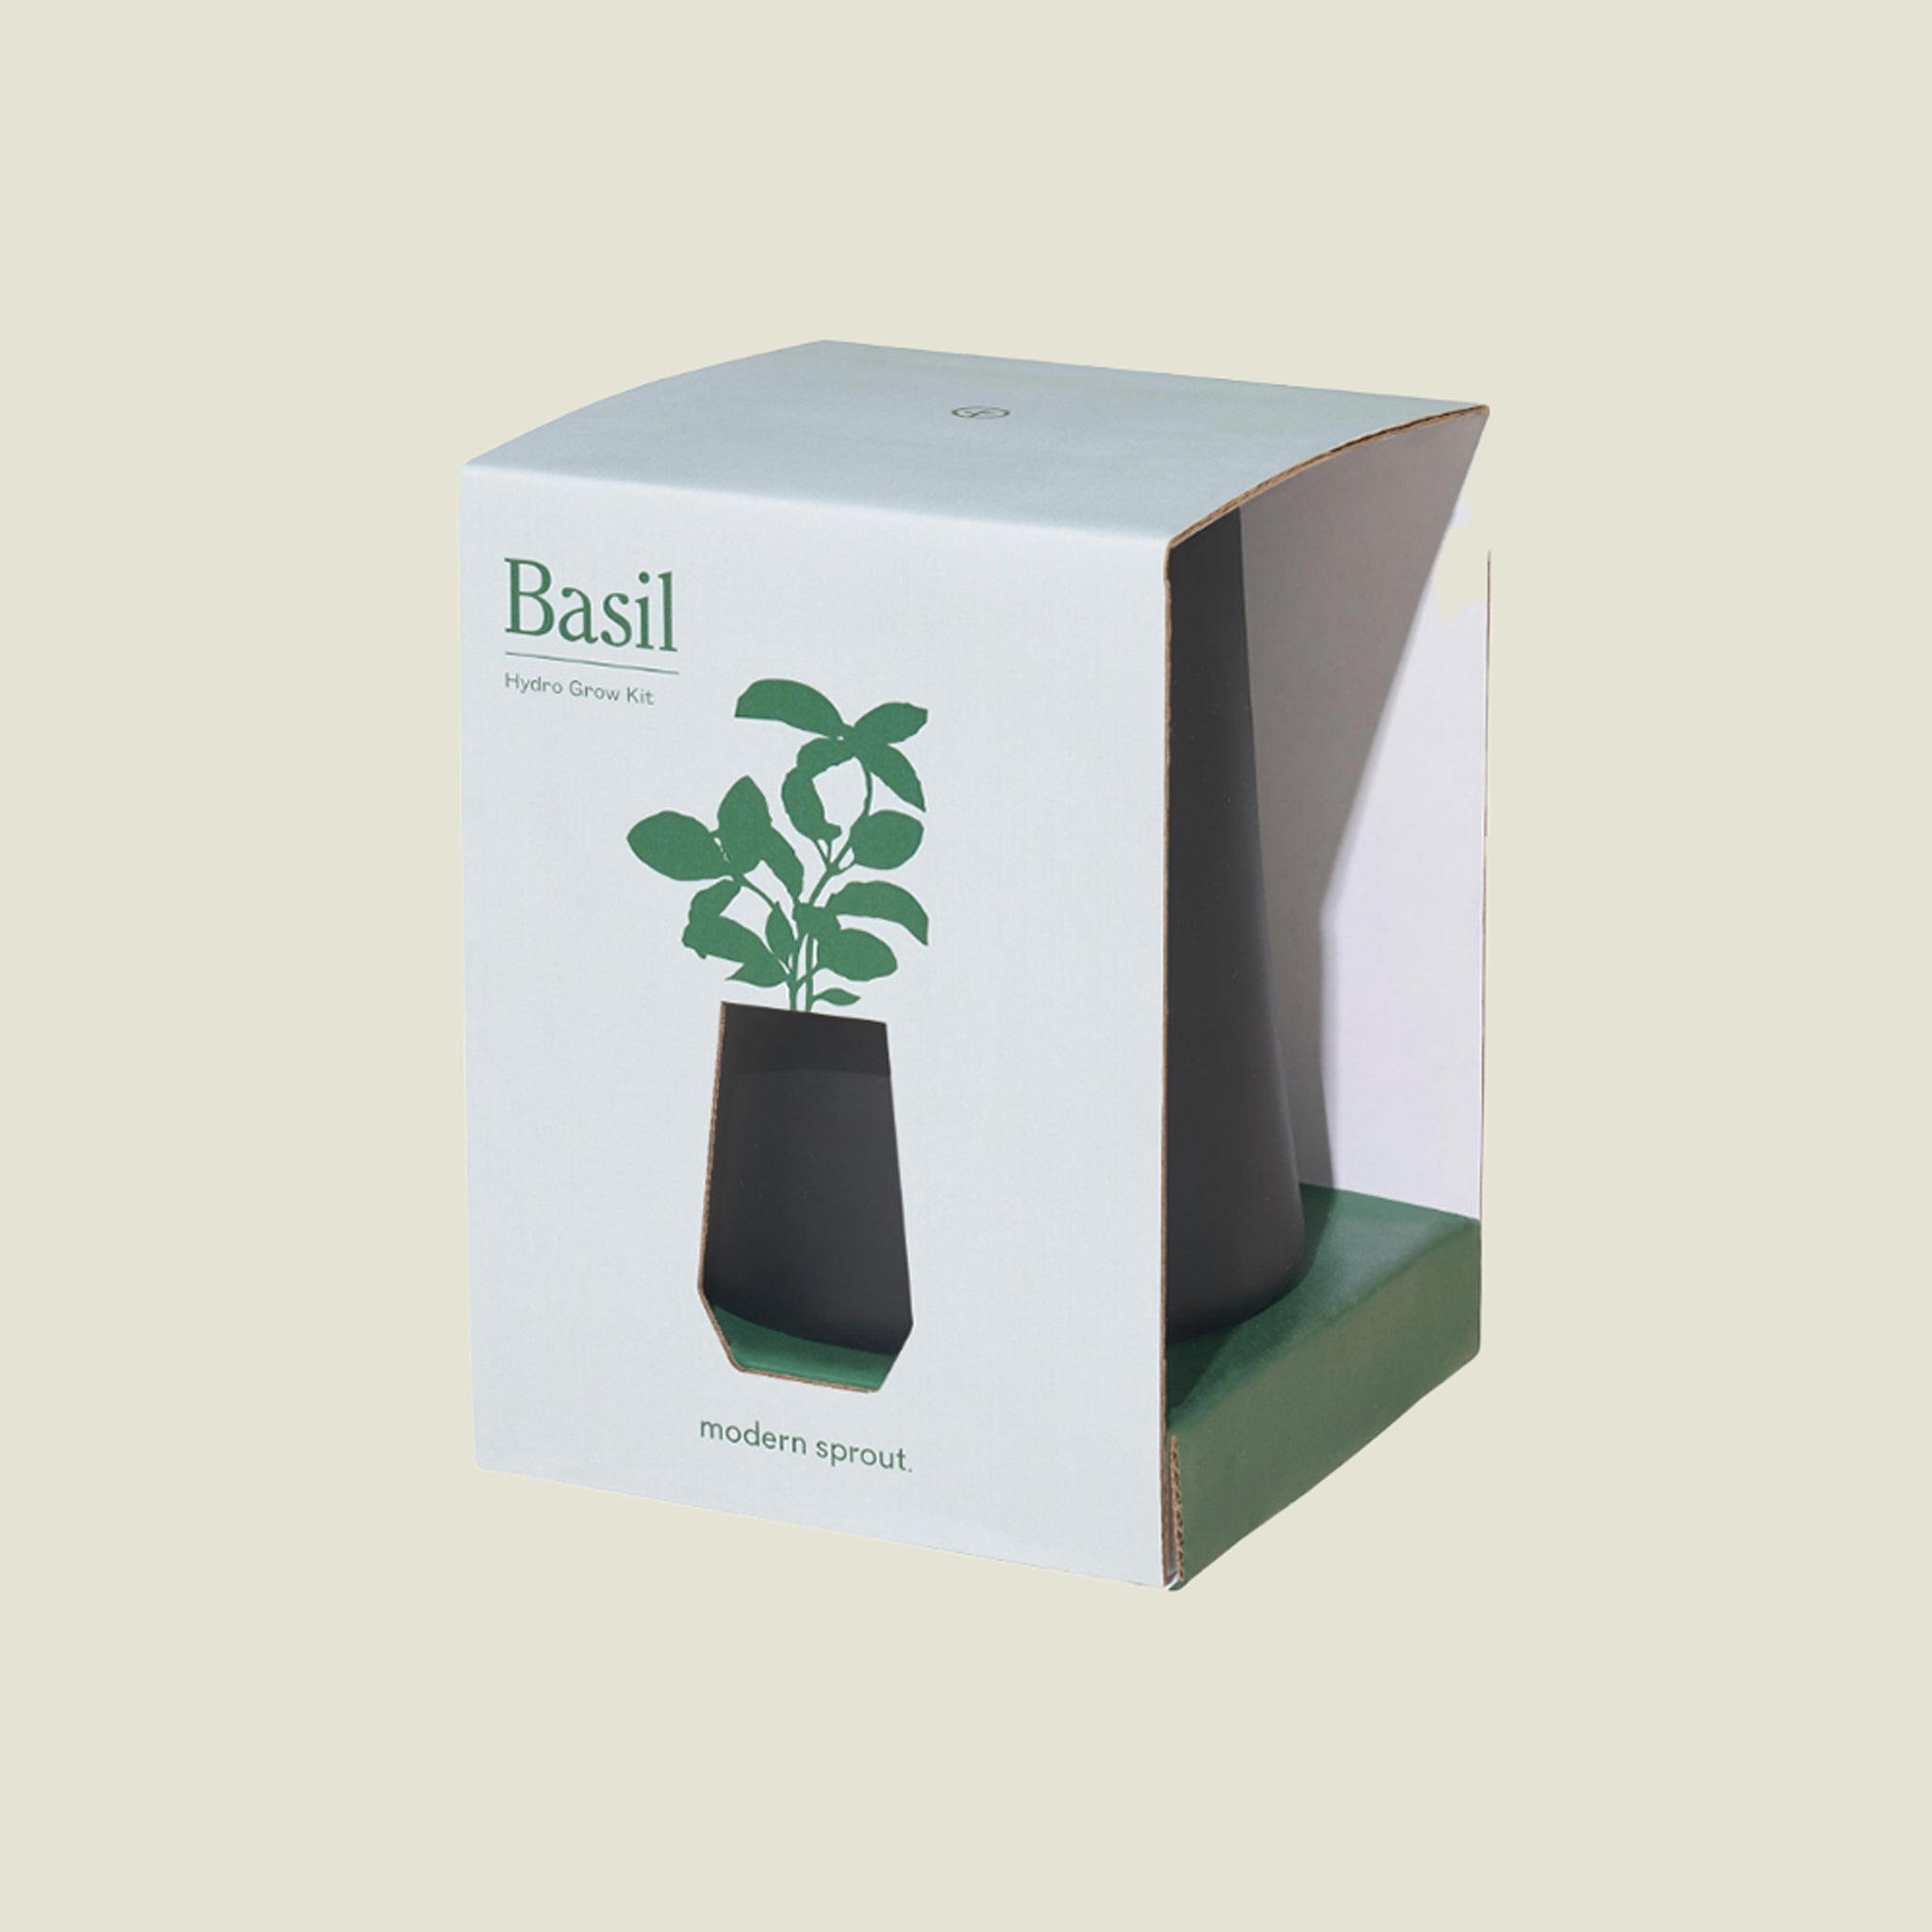 Basil Hydro Grow Kit - Blackbird General Store